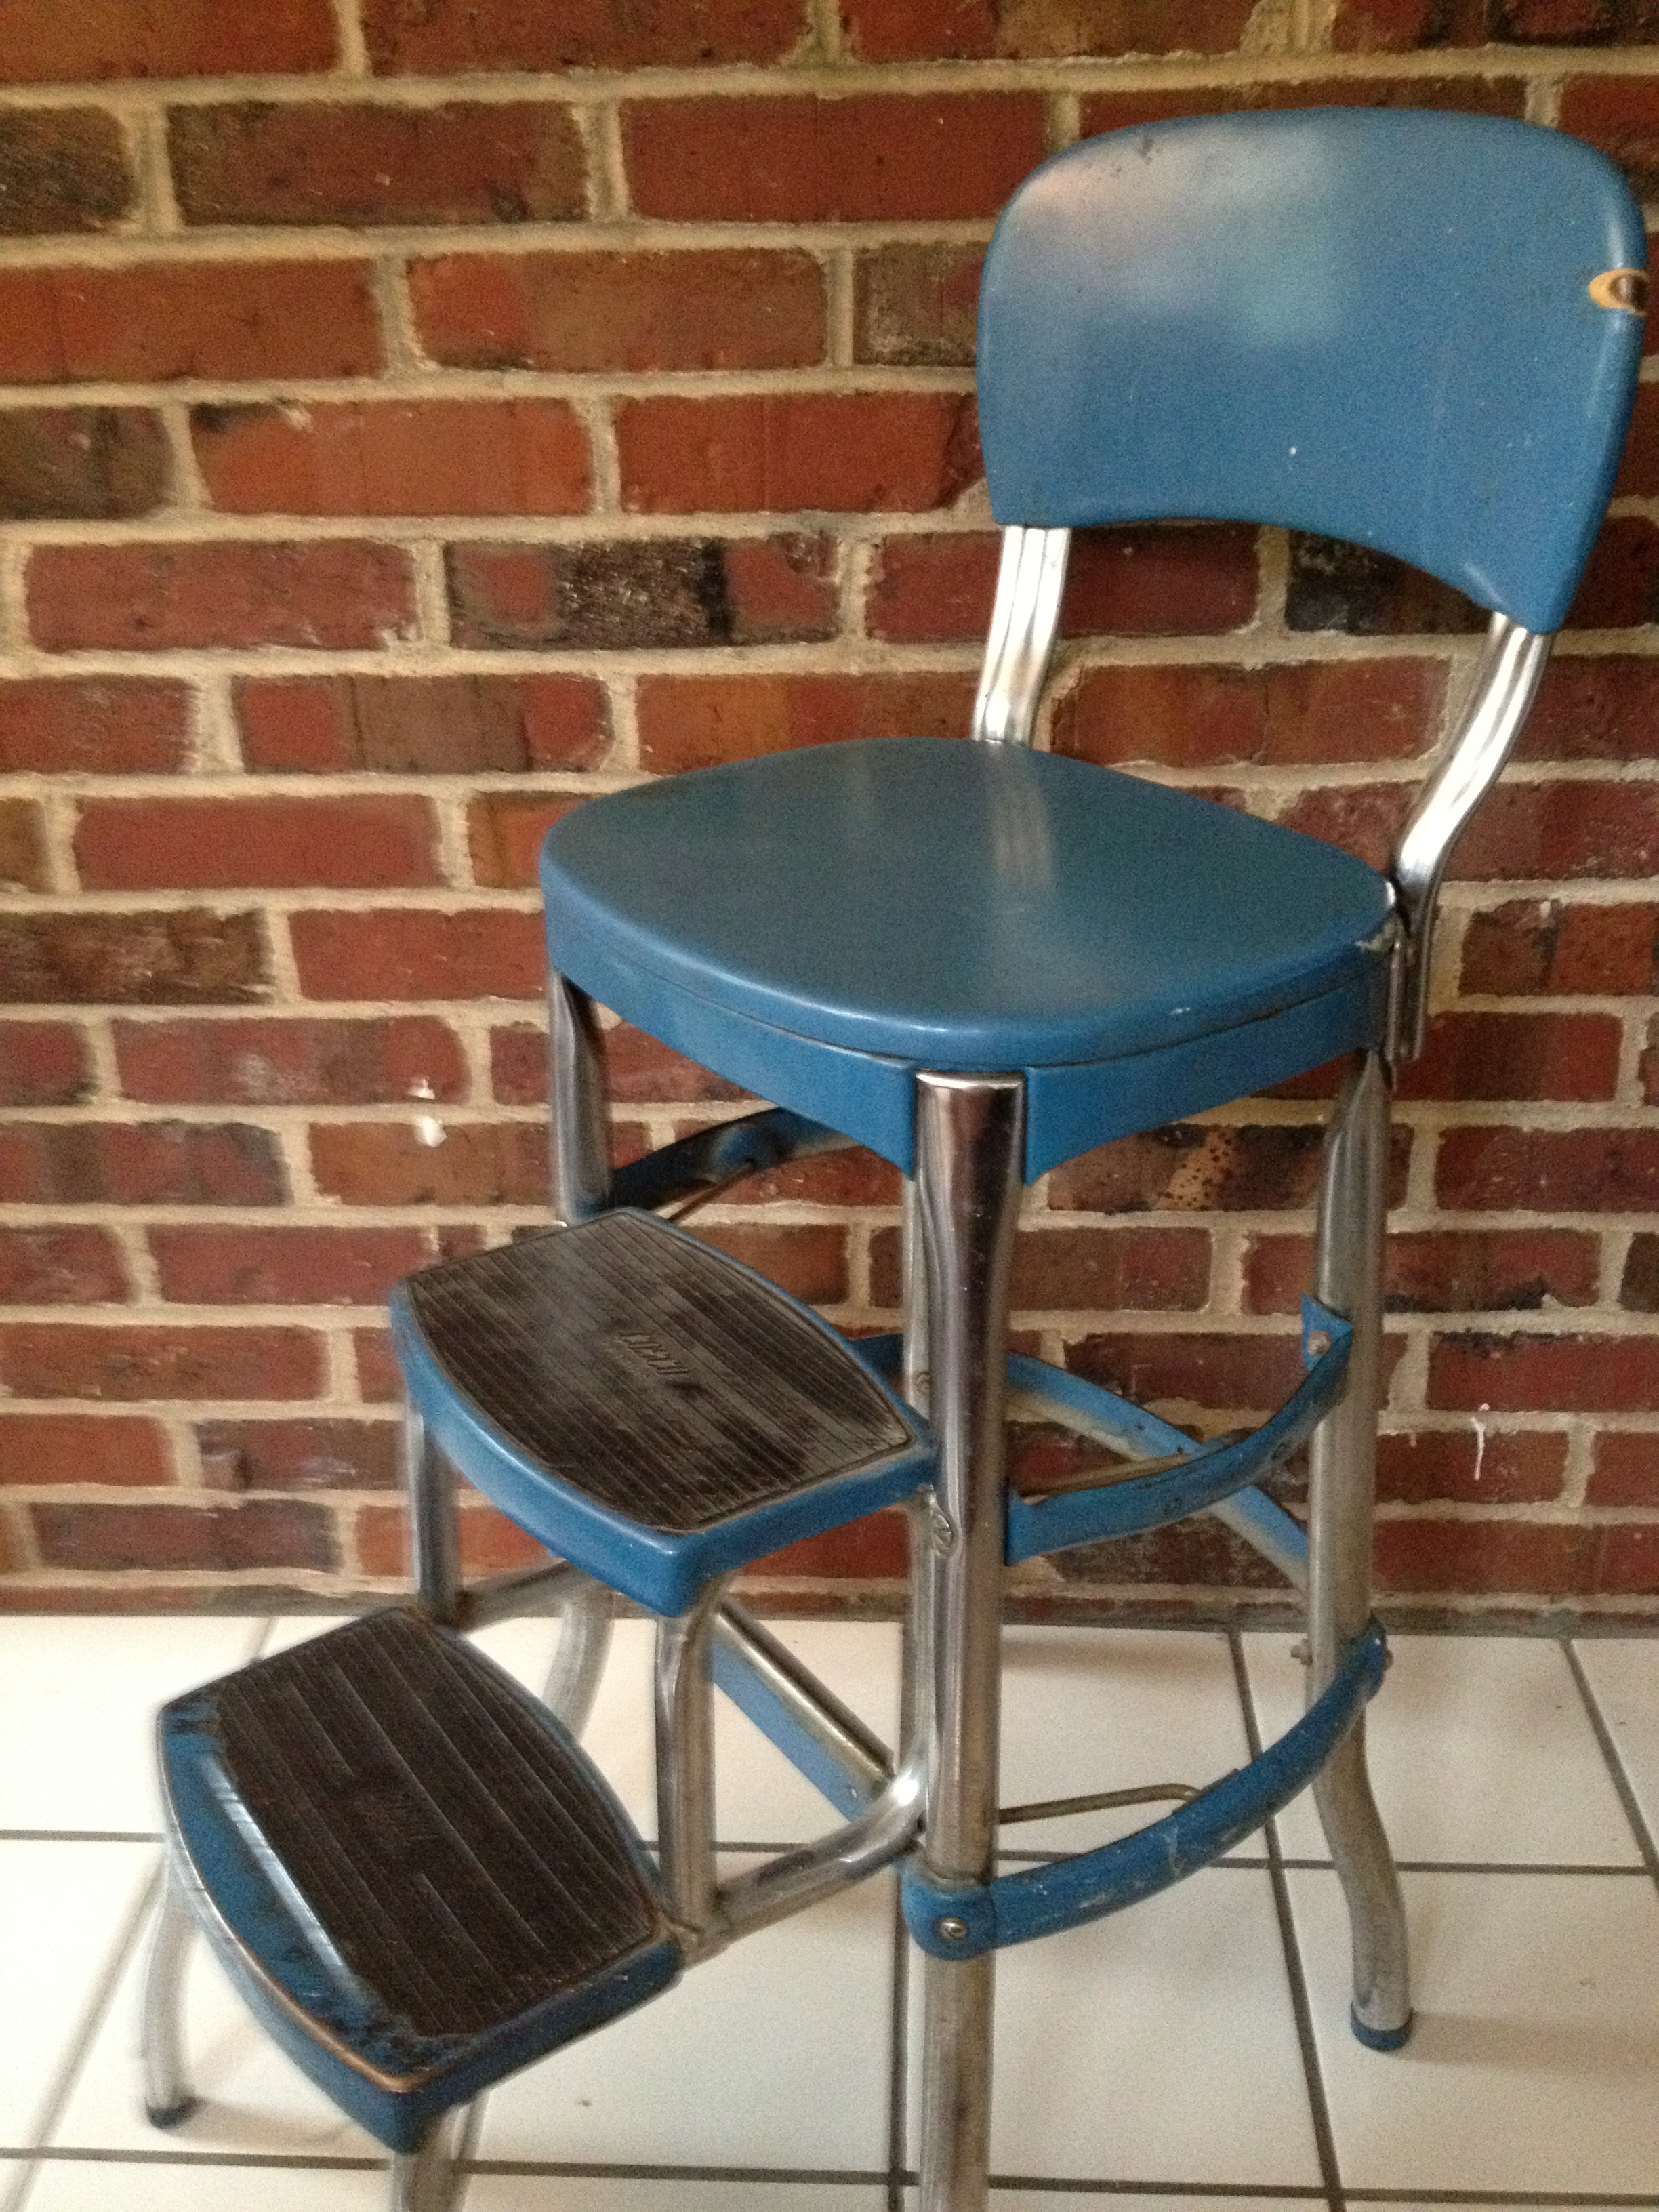 retro chair step stool best lumbar support for office vintage cosco saltshed